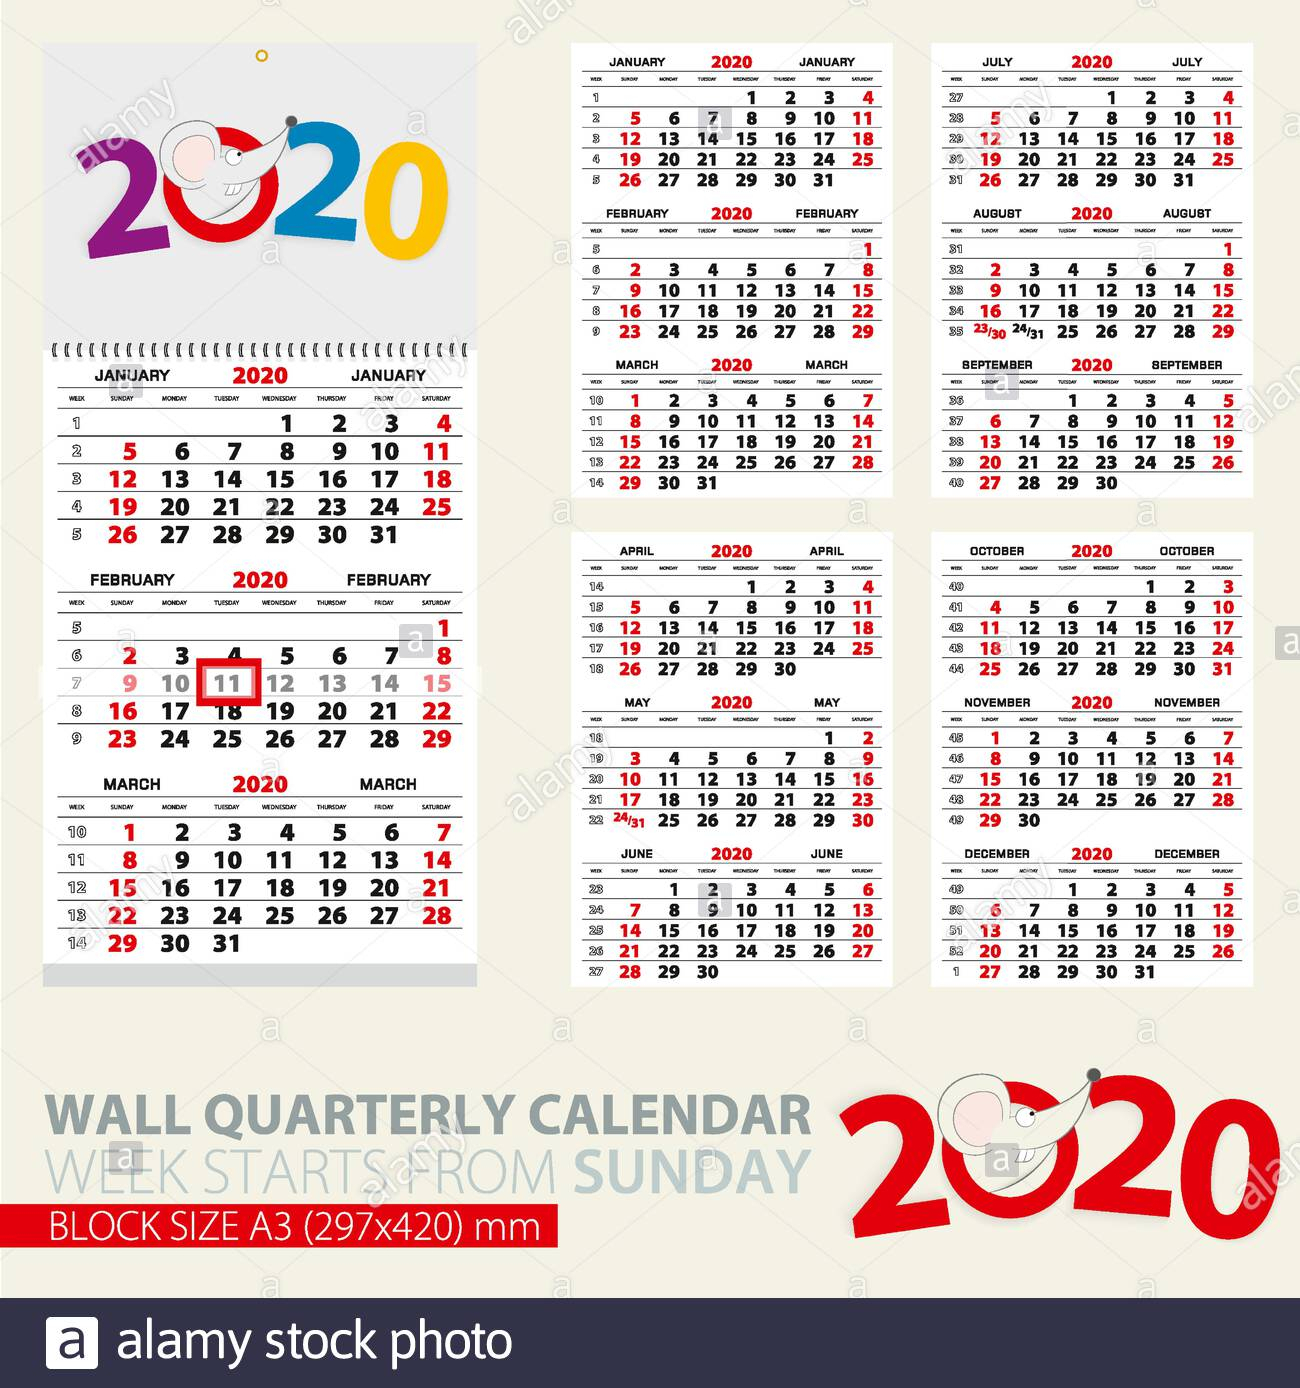 Print Template Of Wall Quarterly Calendar For 2020 Year